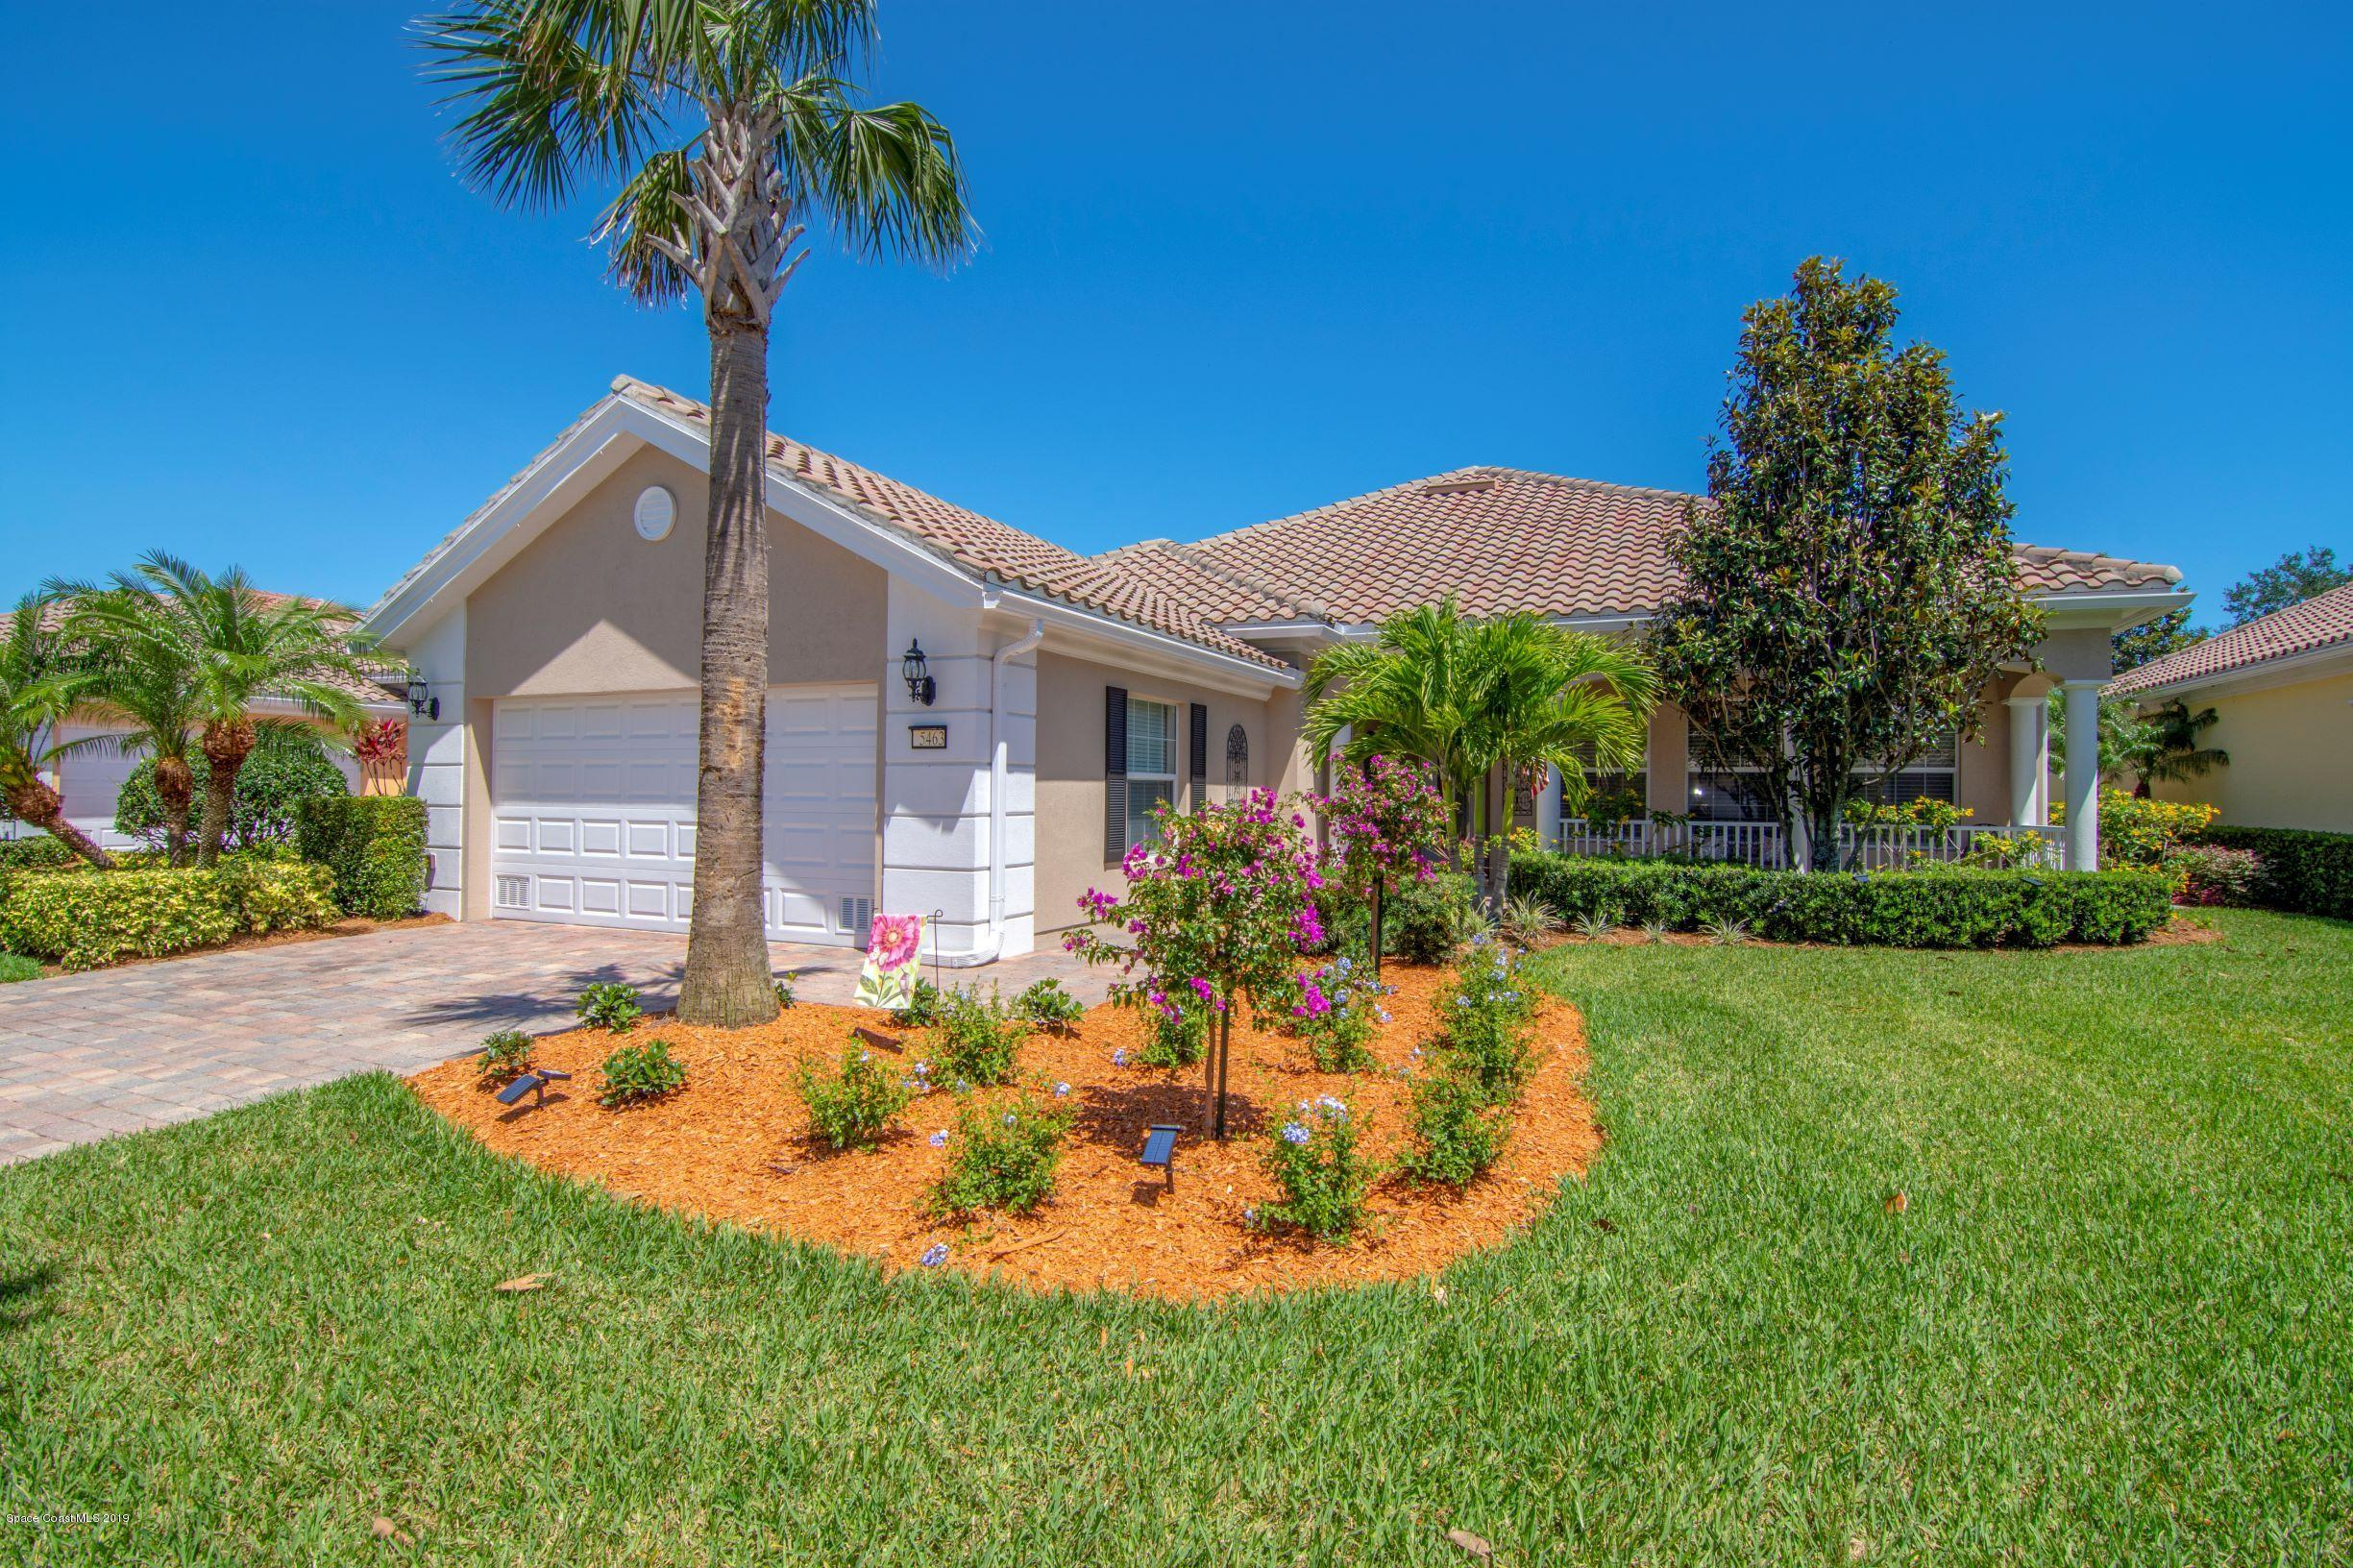 Single Family Home for Sale at 5463 Barbados Vero Beach, Florida 32967 United States